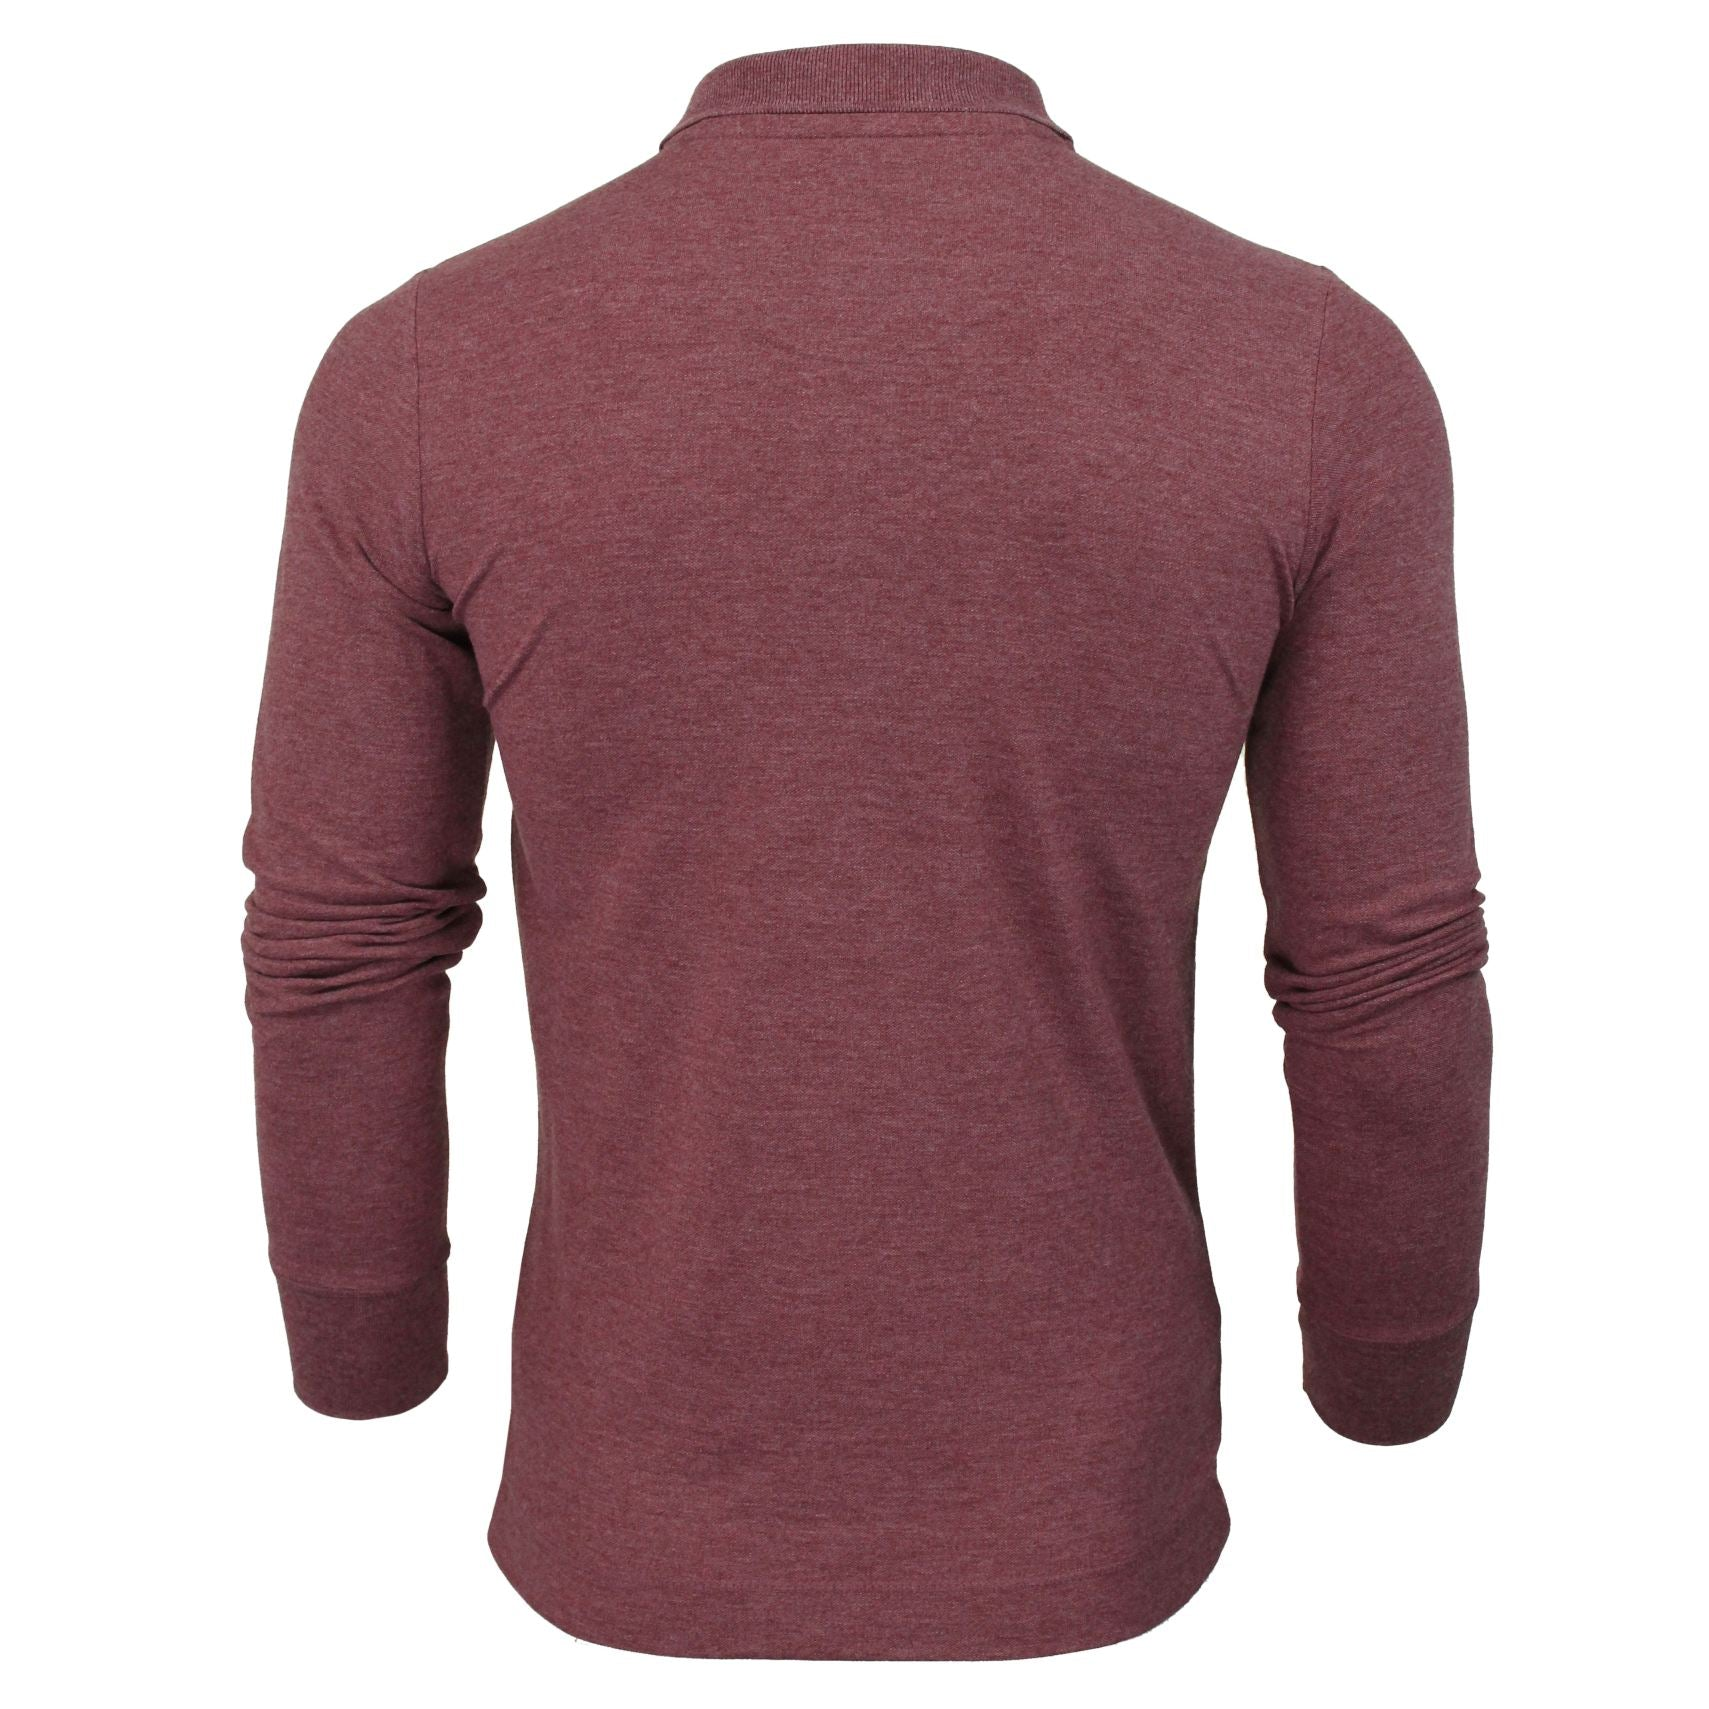 Mens Long Sleeved Polo Shirt by Tokyo Laundry-3